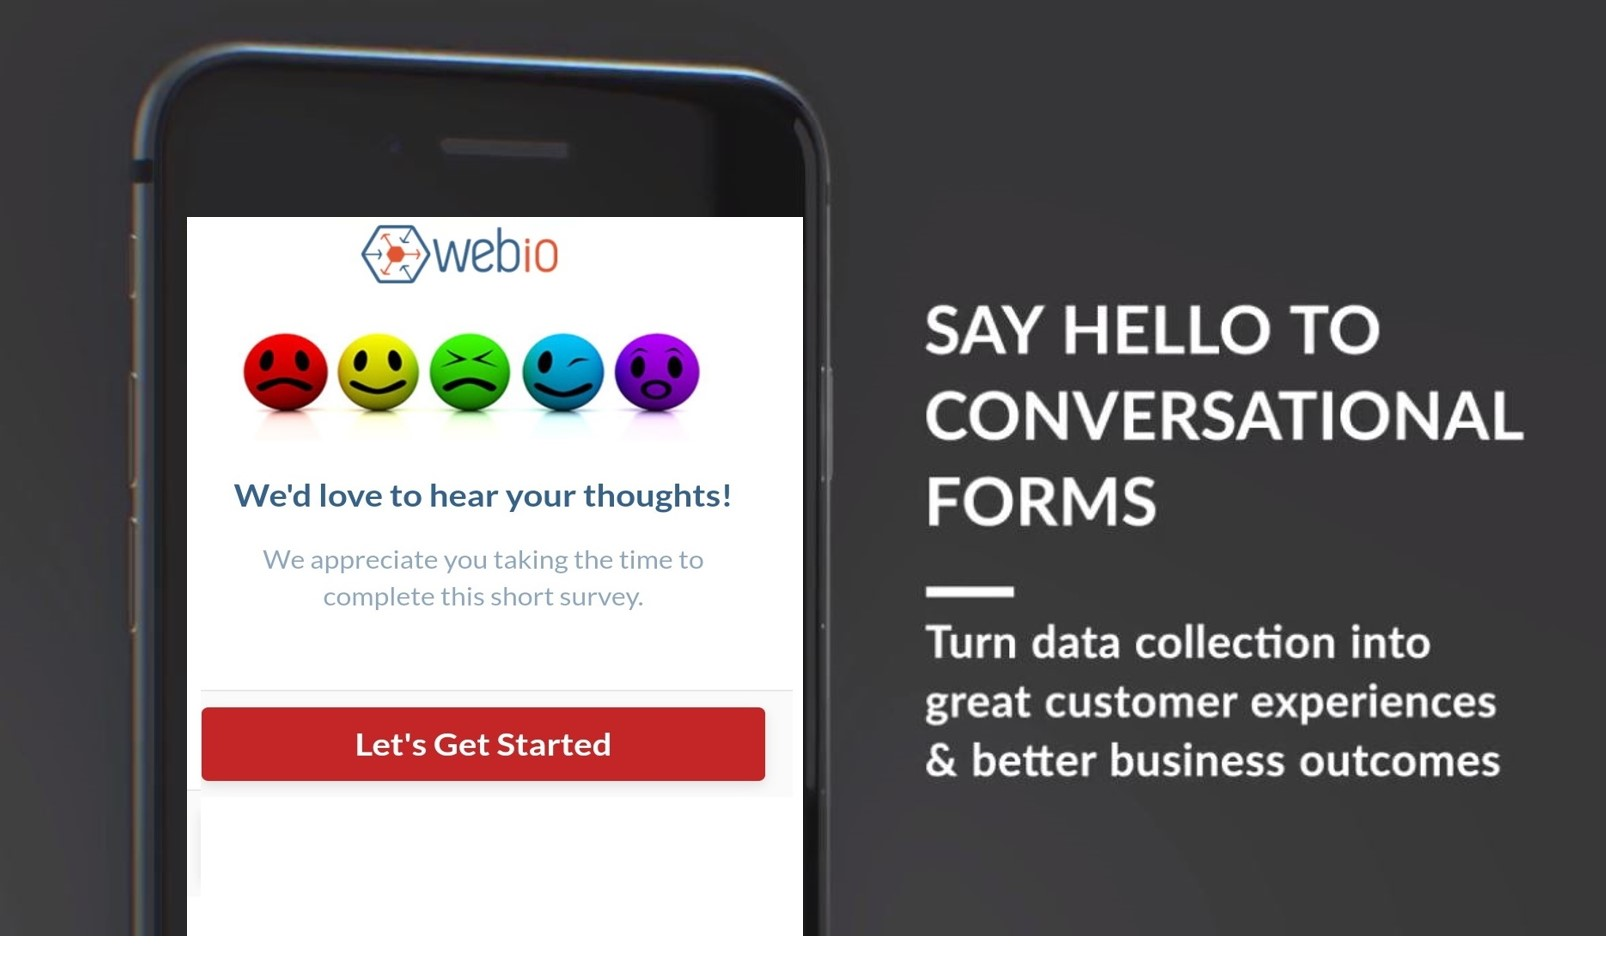 Webio Launches Customer Conversational Forms for the Enterprise